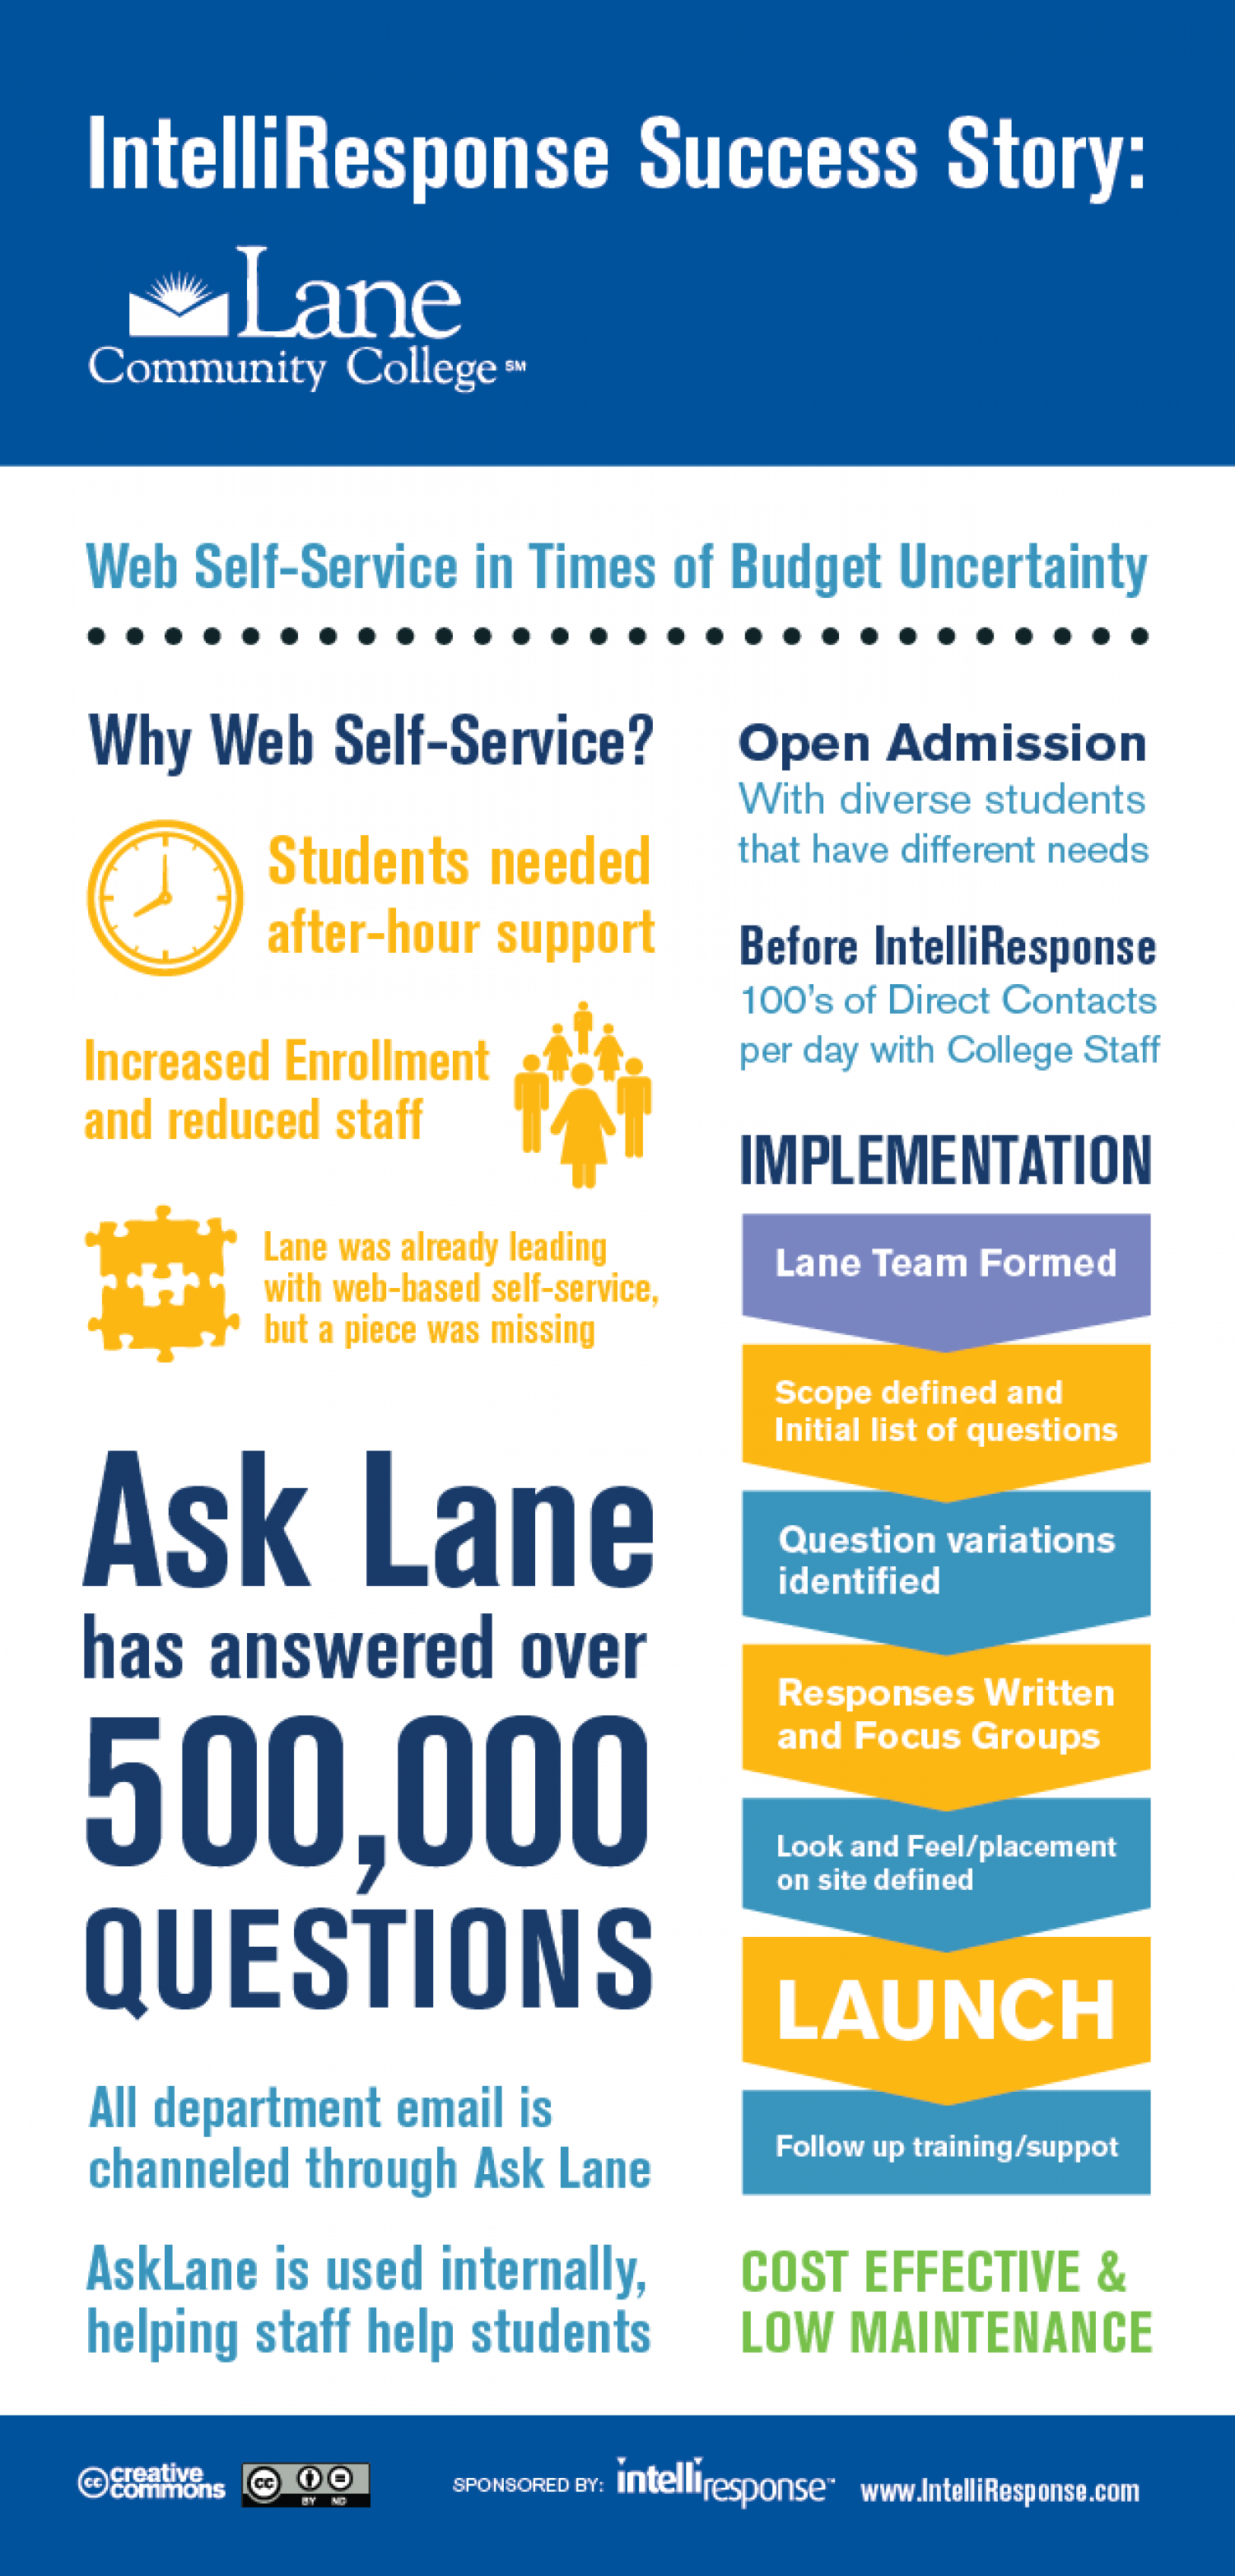 Virtual Agent Answers 500,000 Questions for Lane Community College Infographic